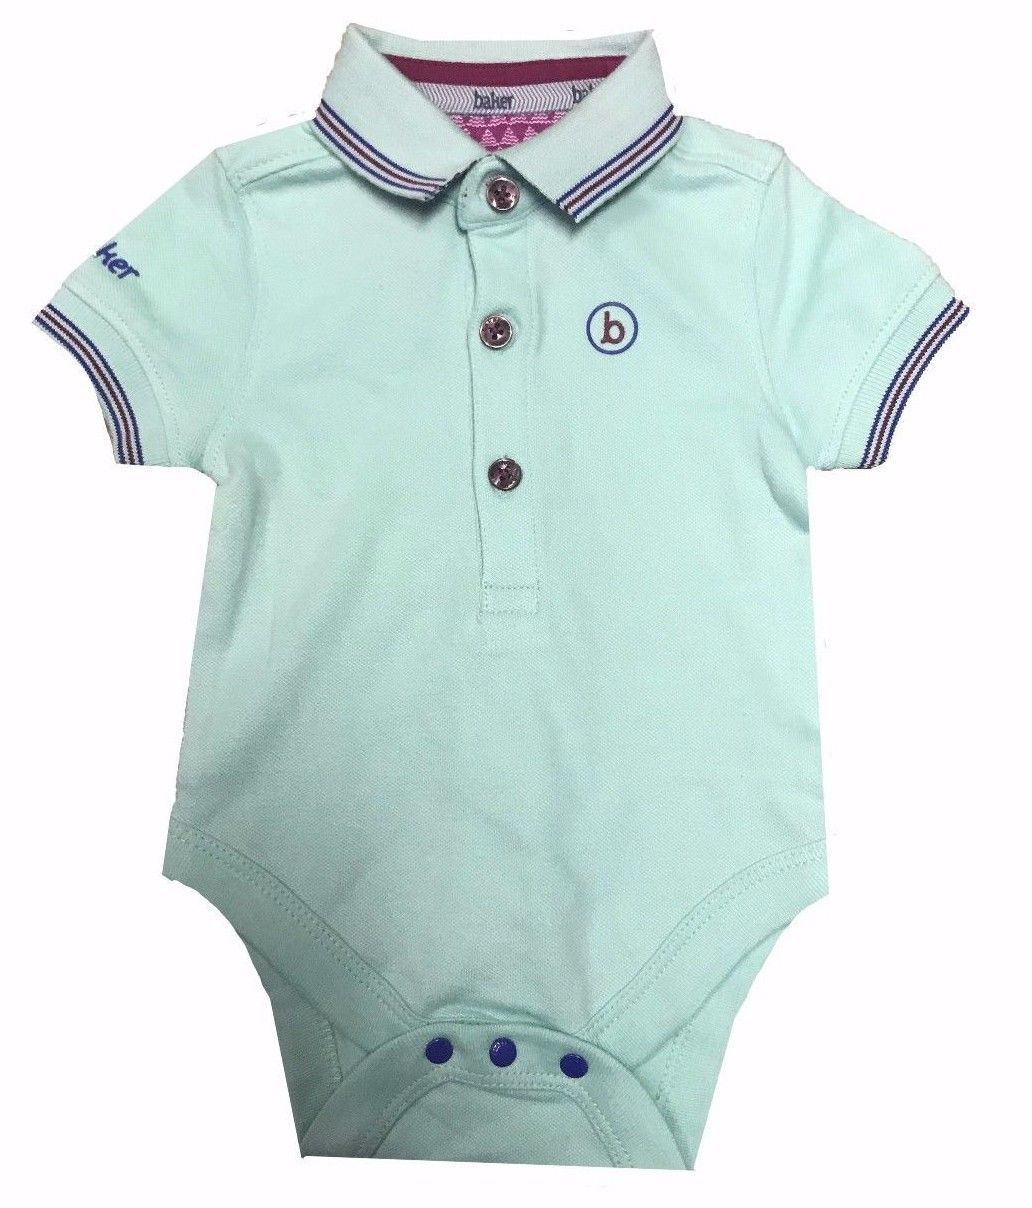 266ab3f182148e Ex Baker by Ted Baker Baby Boys Girls Polo Bodysuit Pale Green Newborn-18  Months